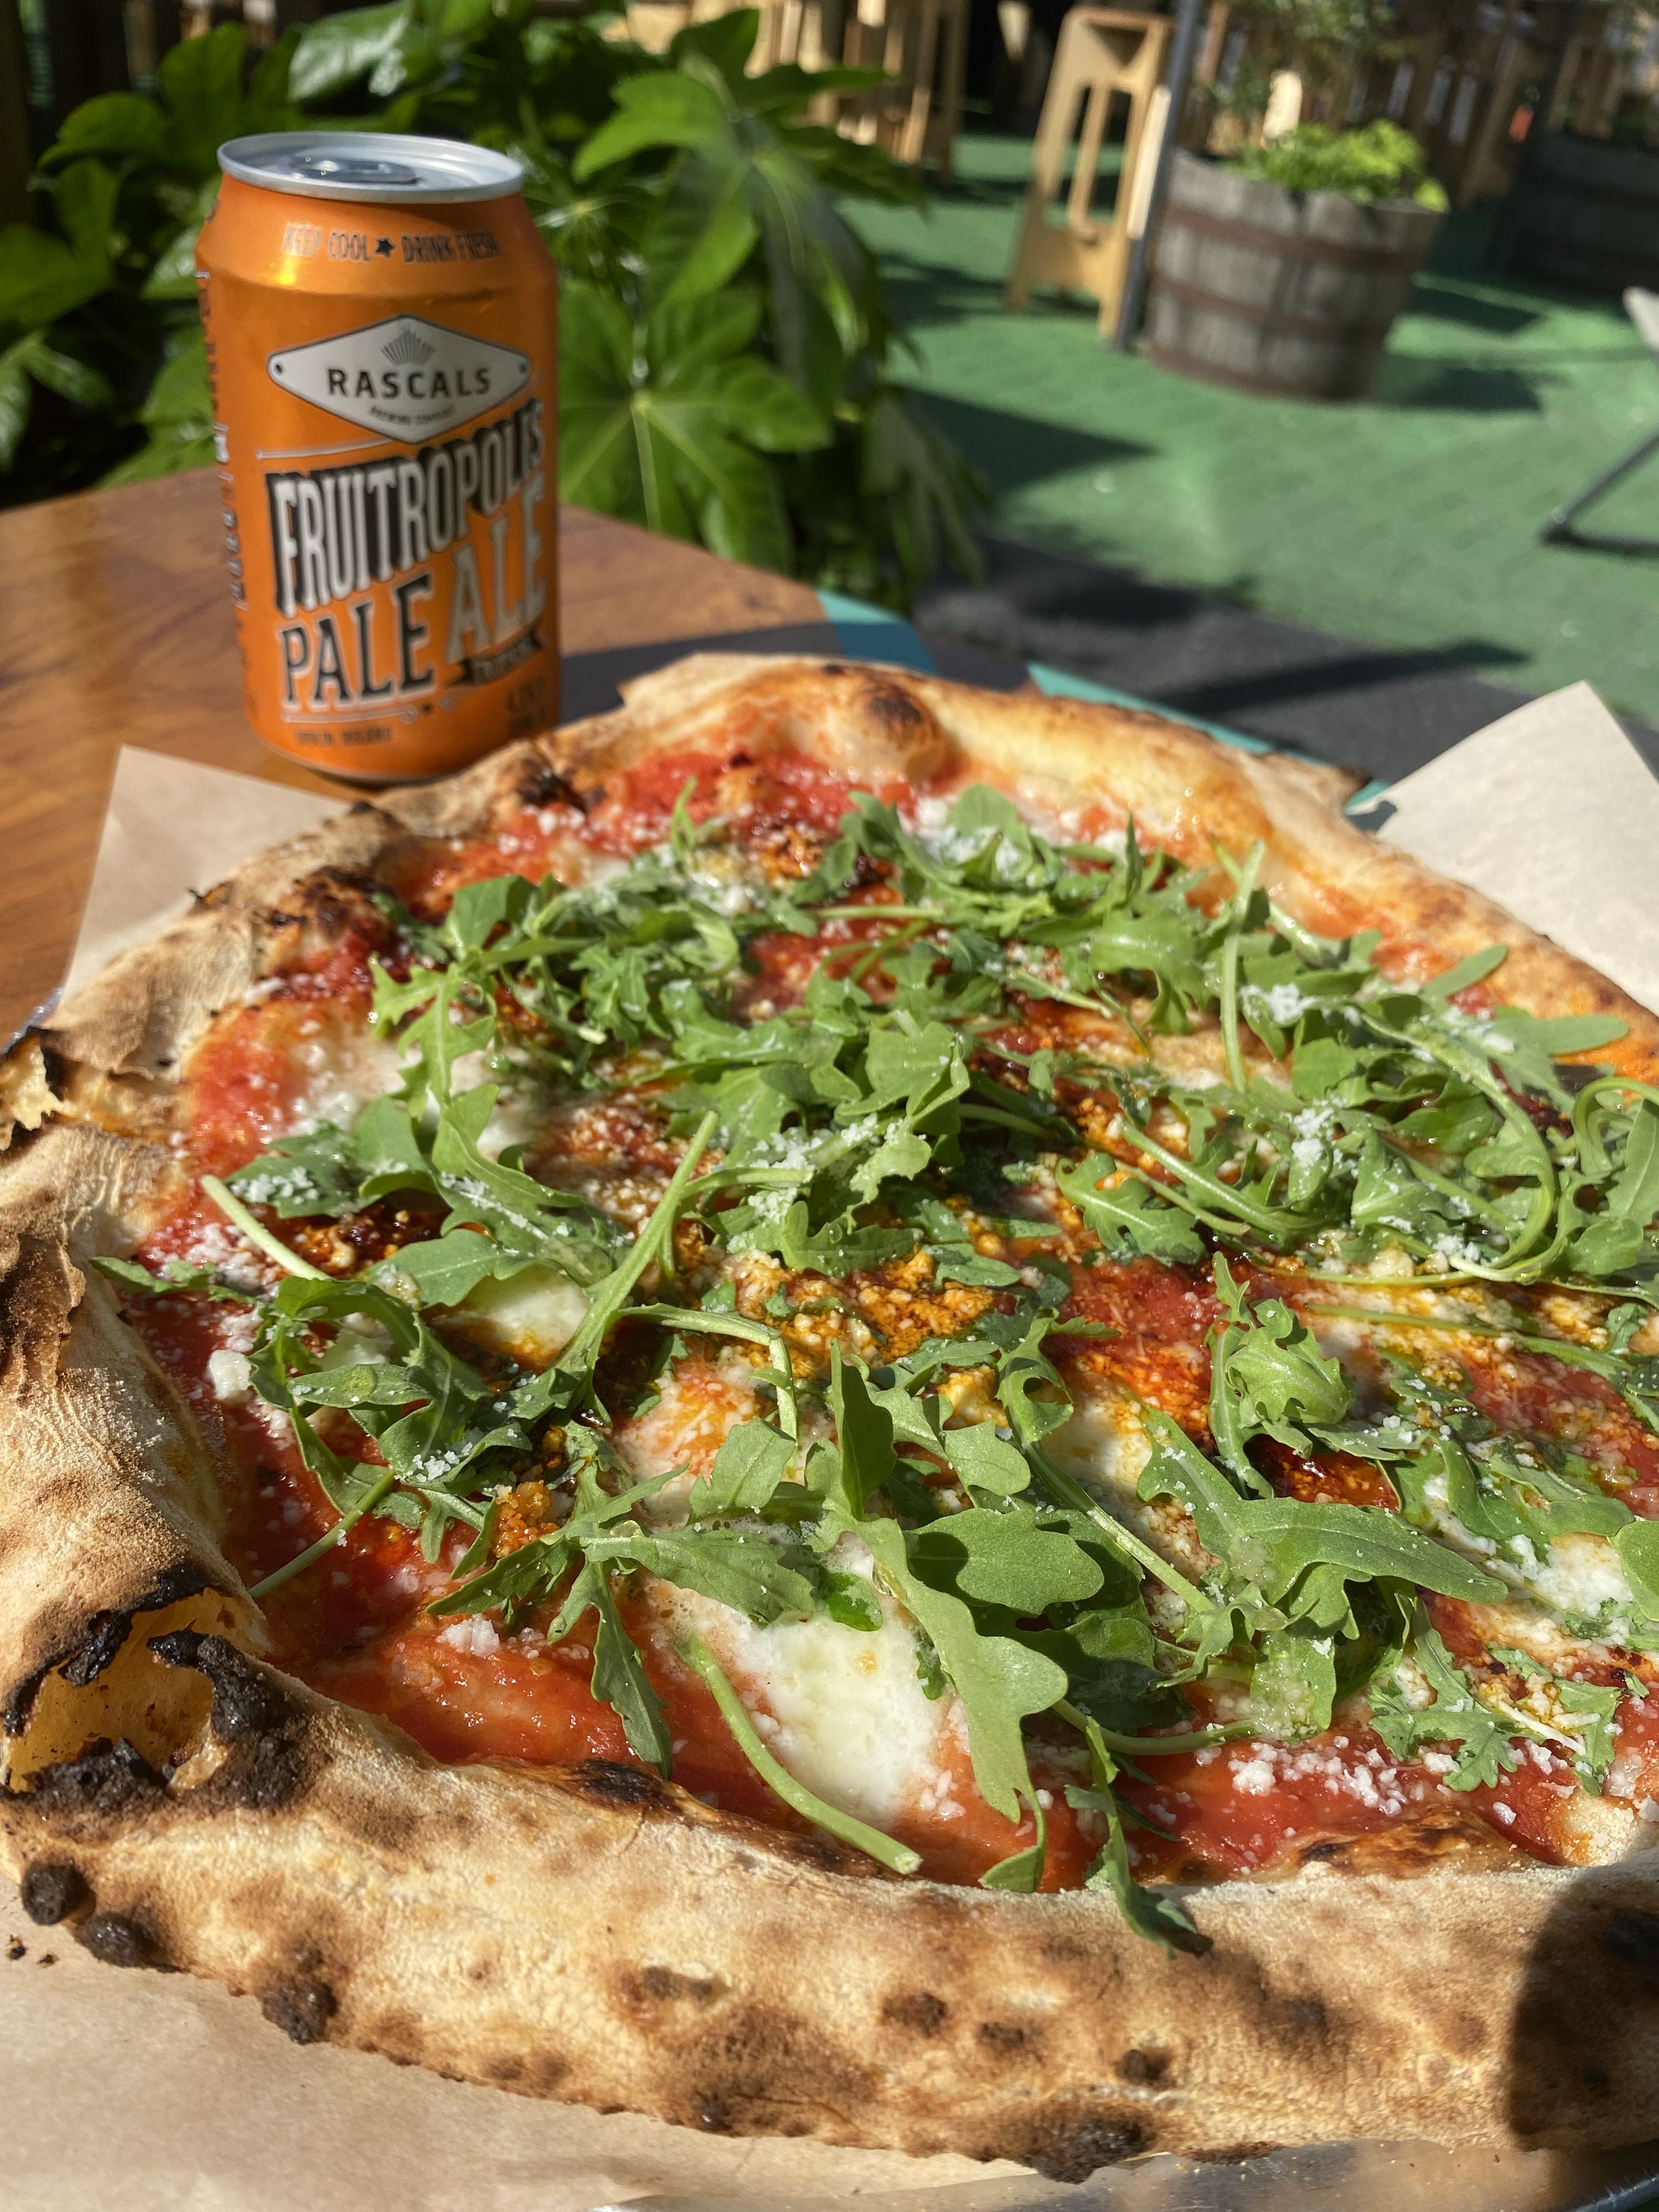 Light My Fire Pizza with Fruitropolis Pale Ale